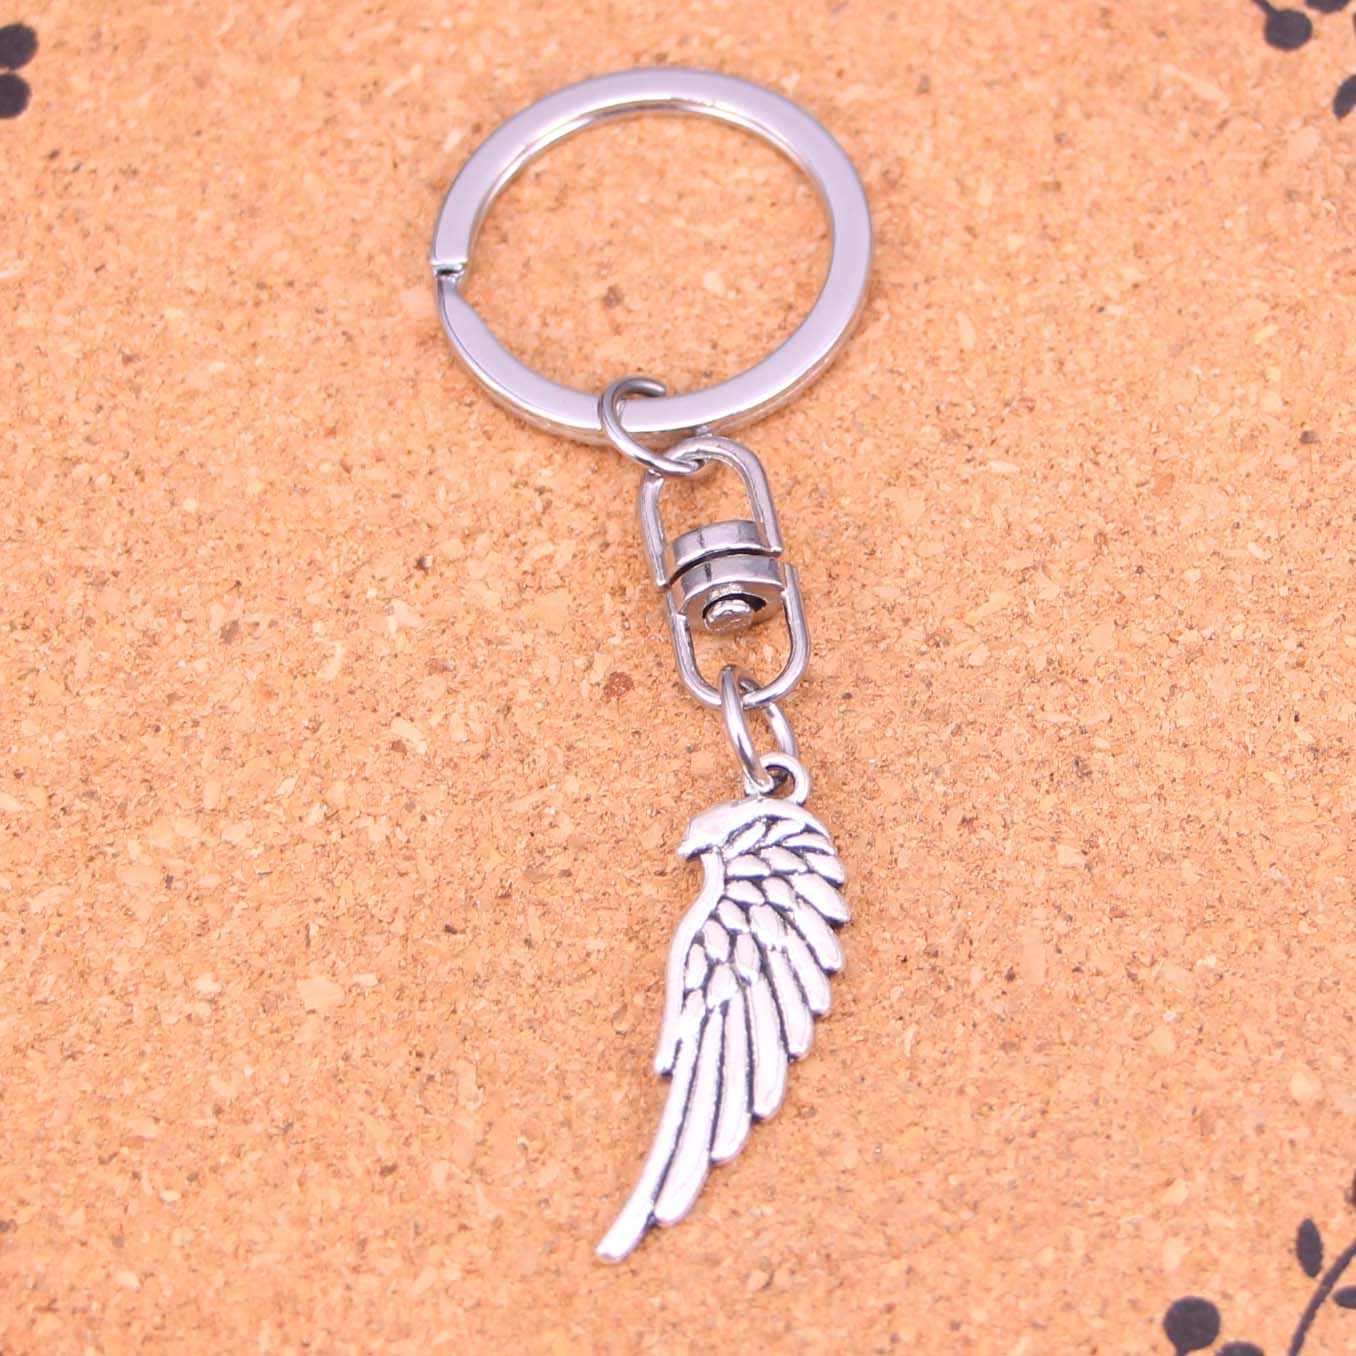 20Pcs double sided angel wings Keychain Novelty Gadget Trinket Souvenir Christmas Gift Keychain Drop Shipping